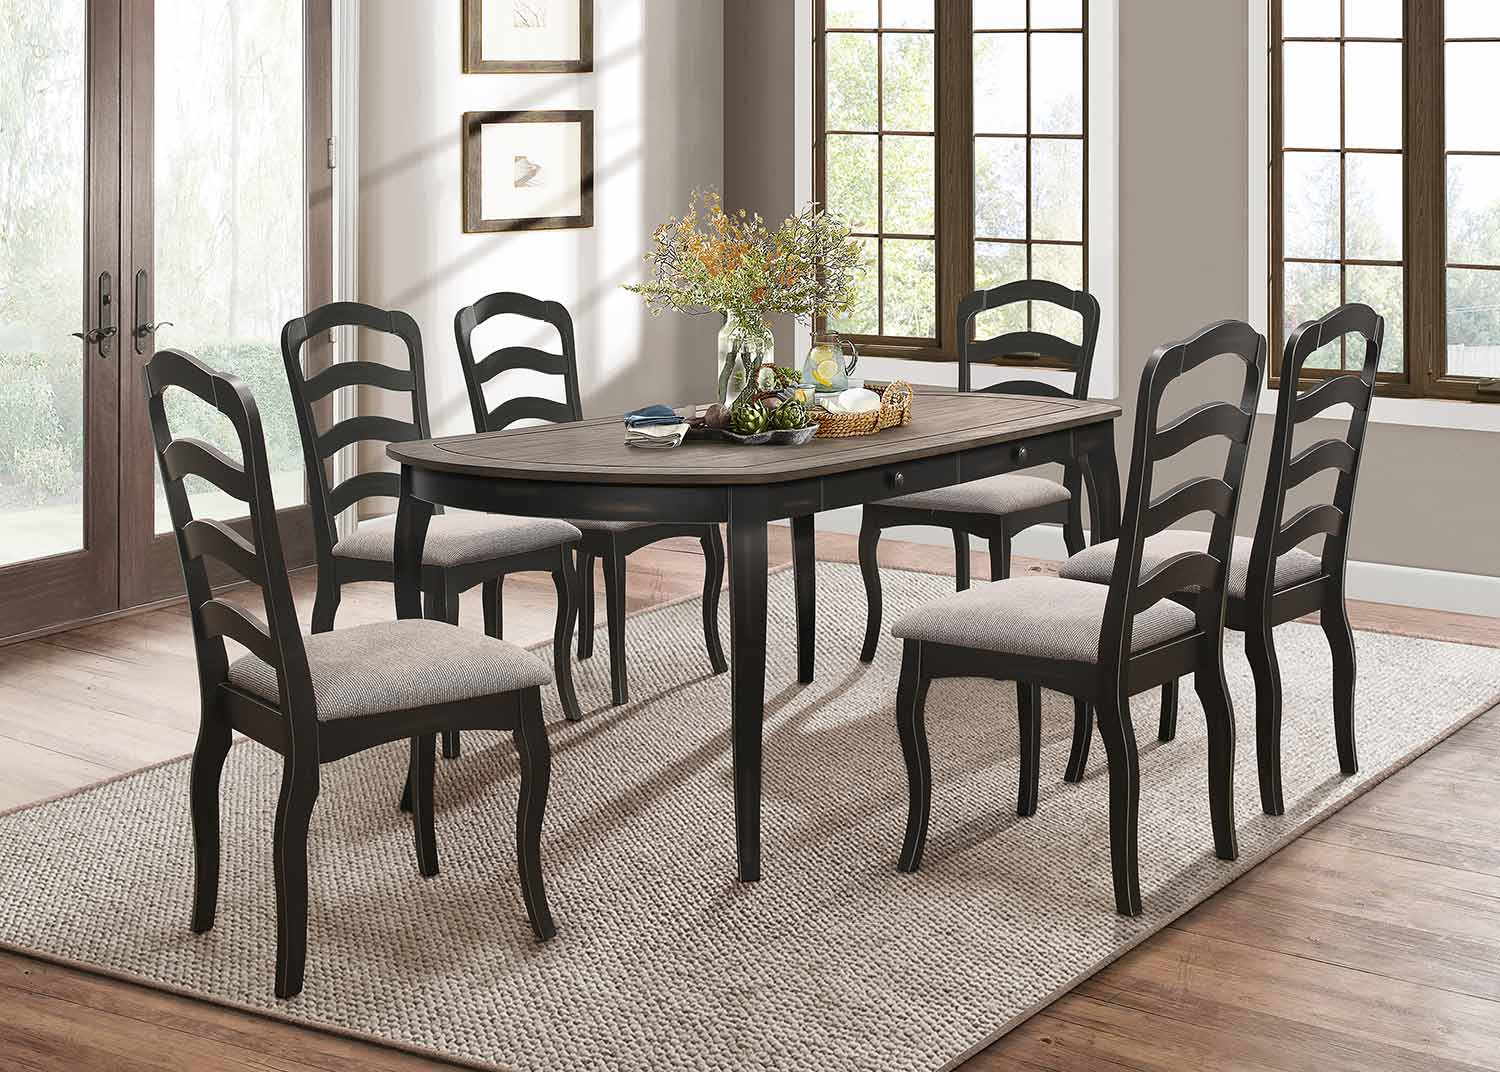 Homelegance Coring Dining Set - Antique 2-Tone